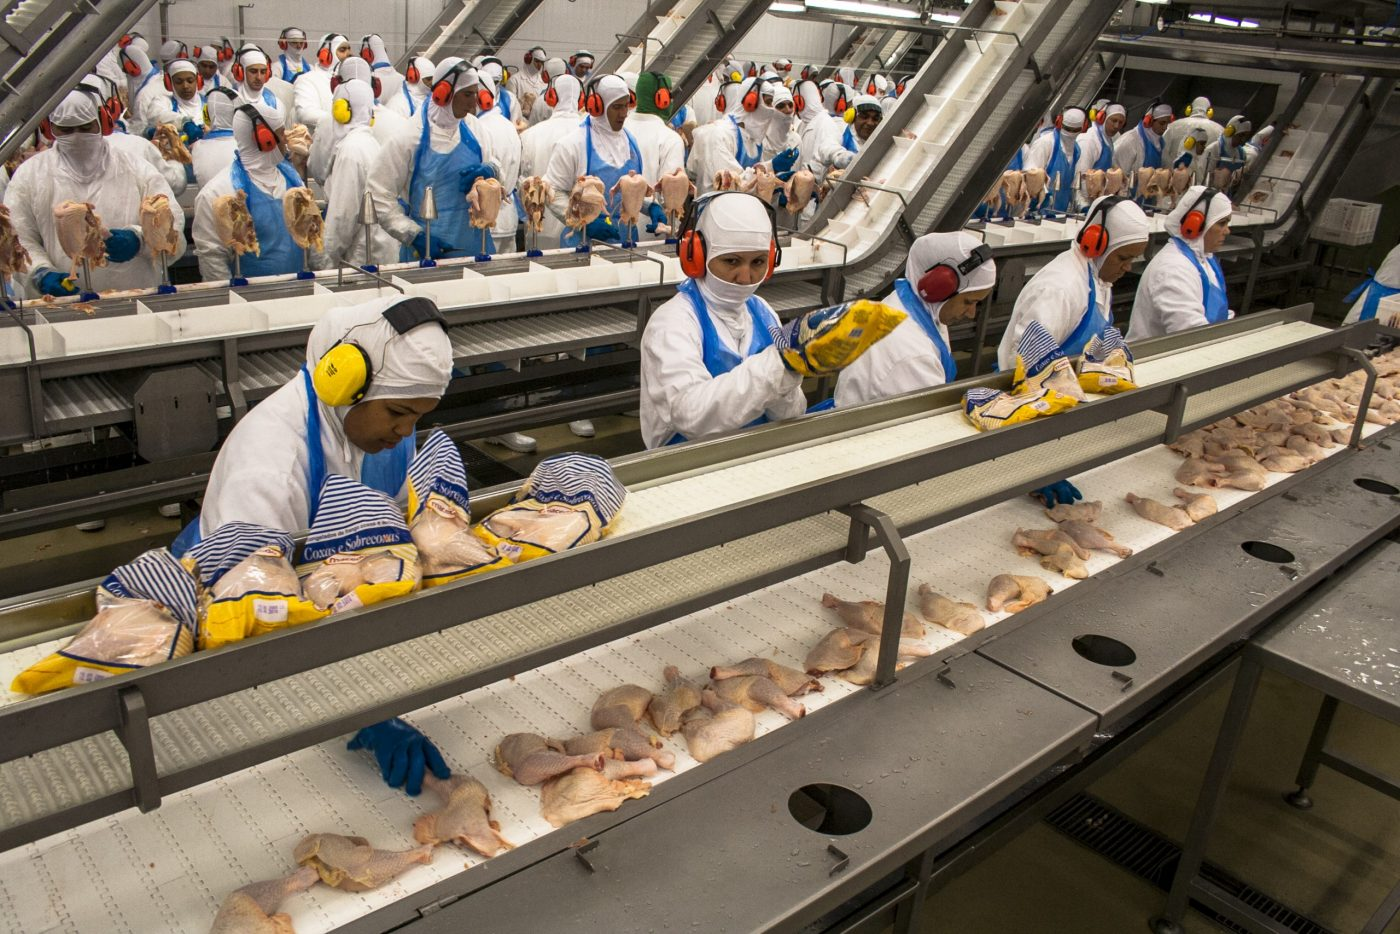 Vertical explainer photo 1 - Processing factory chicken